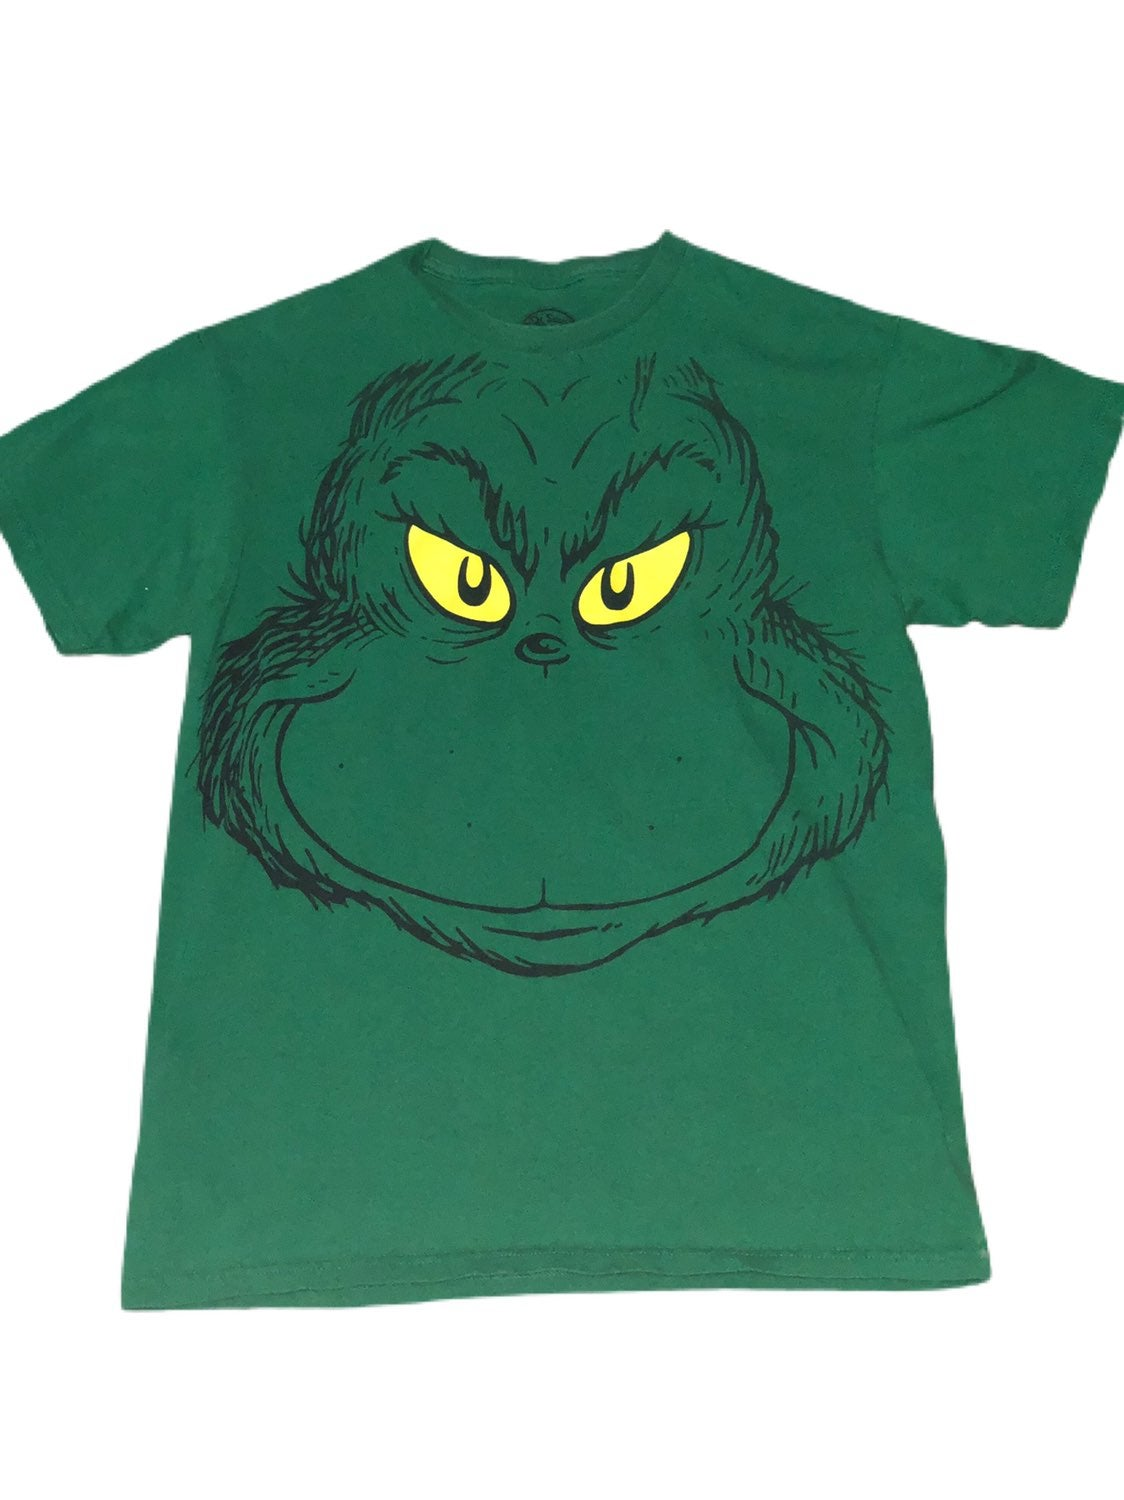 Vintage Dr Suess The Grinch Tee